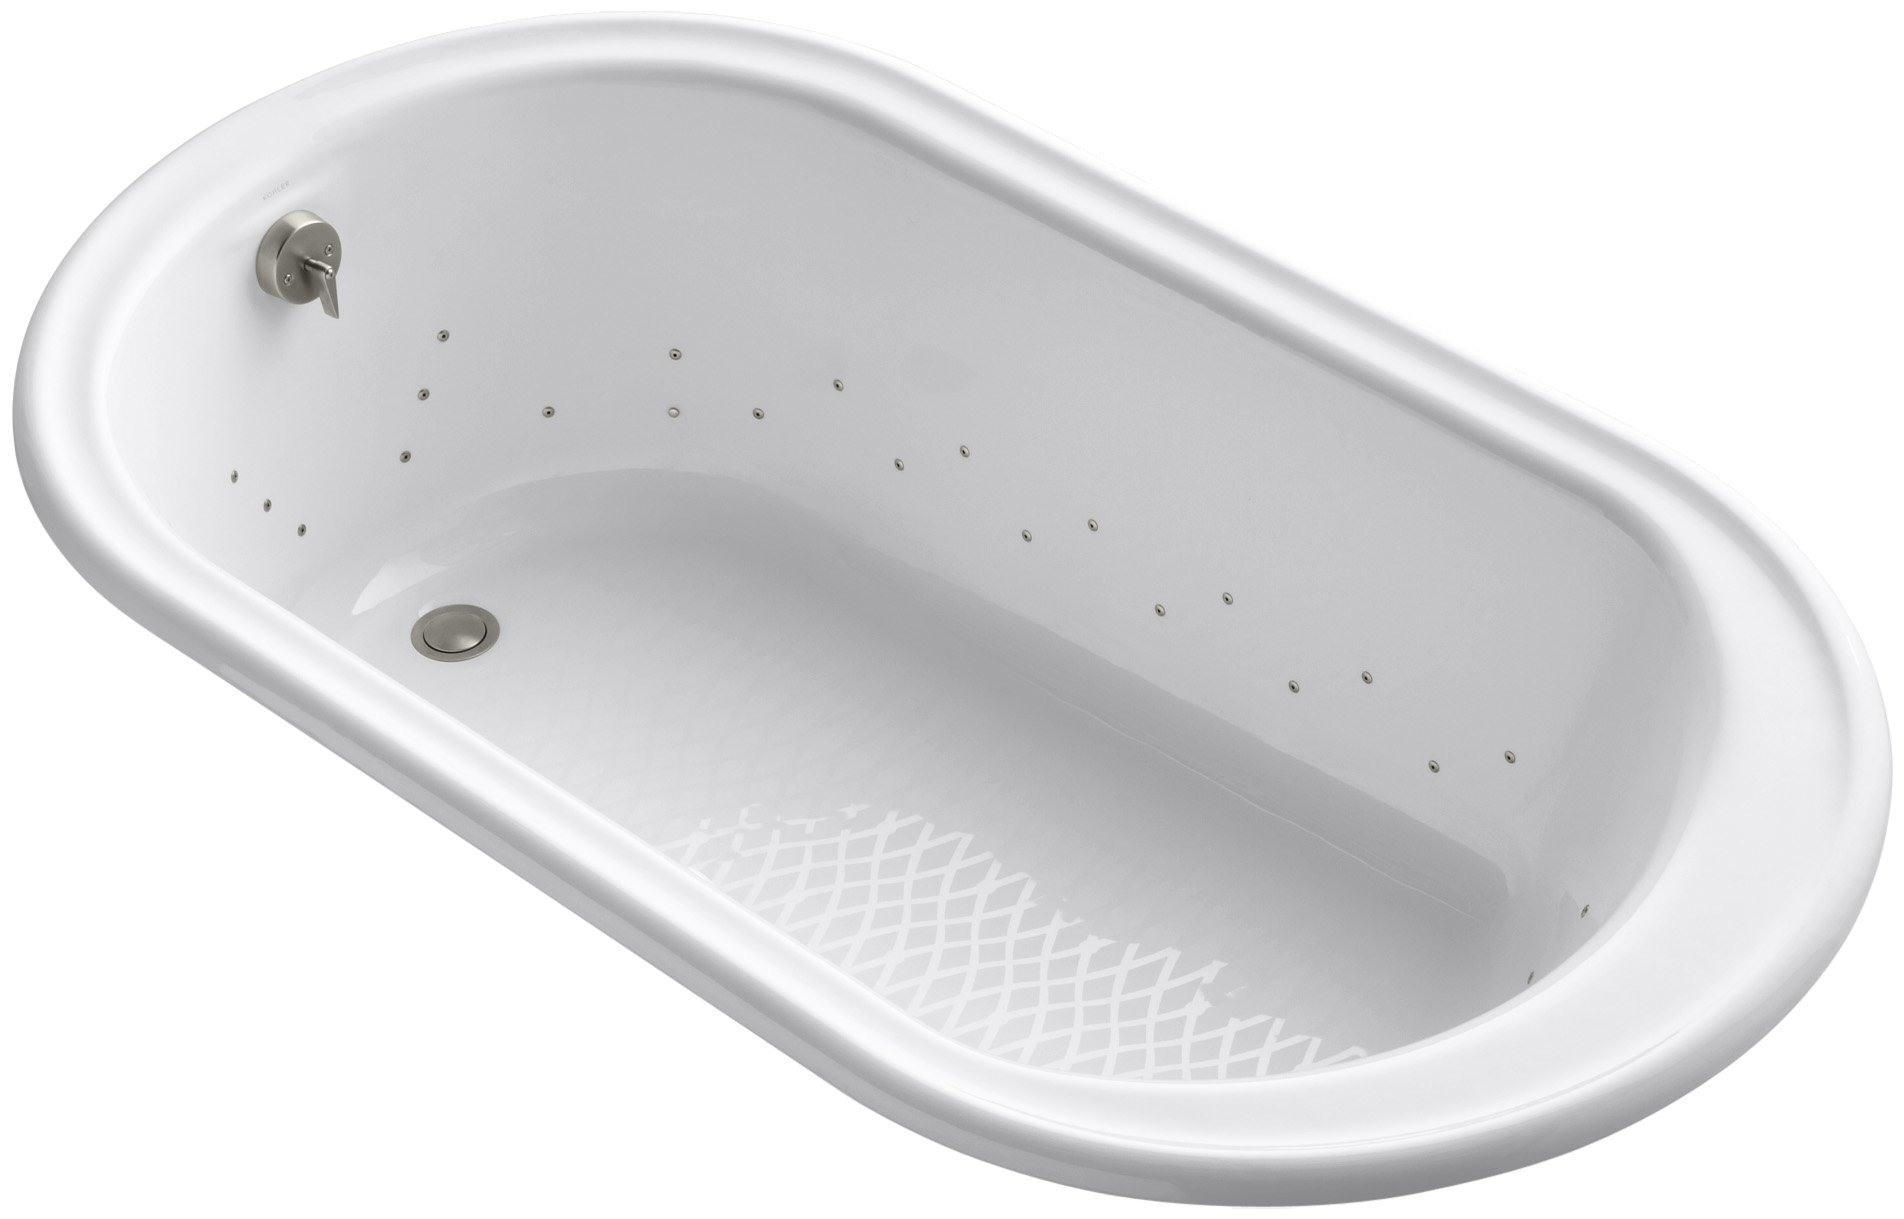 Kohler K-712-GBN-0 Iron Works Bubblemassage 5.5Ft Bath with Vibrant Brushed Nickel Airjet Color, White